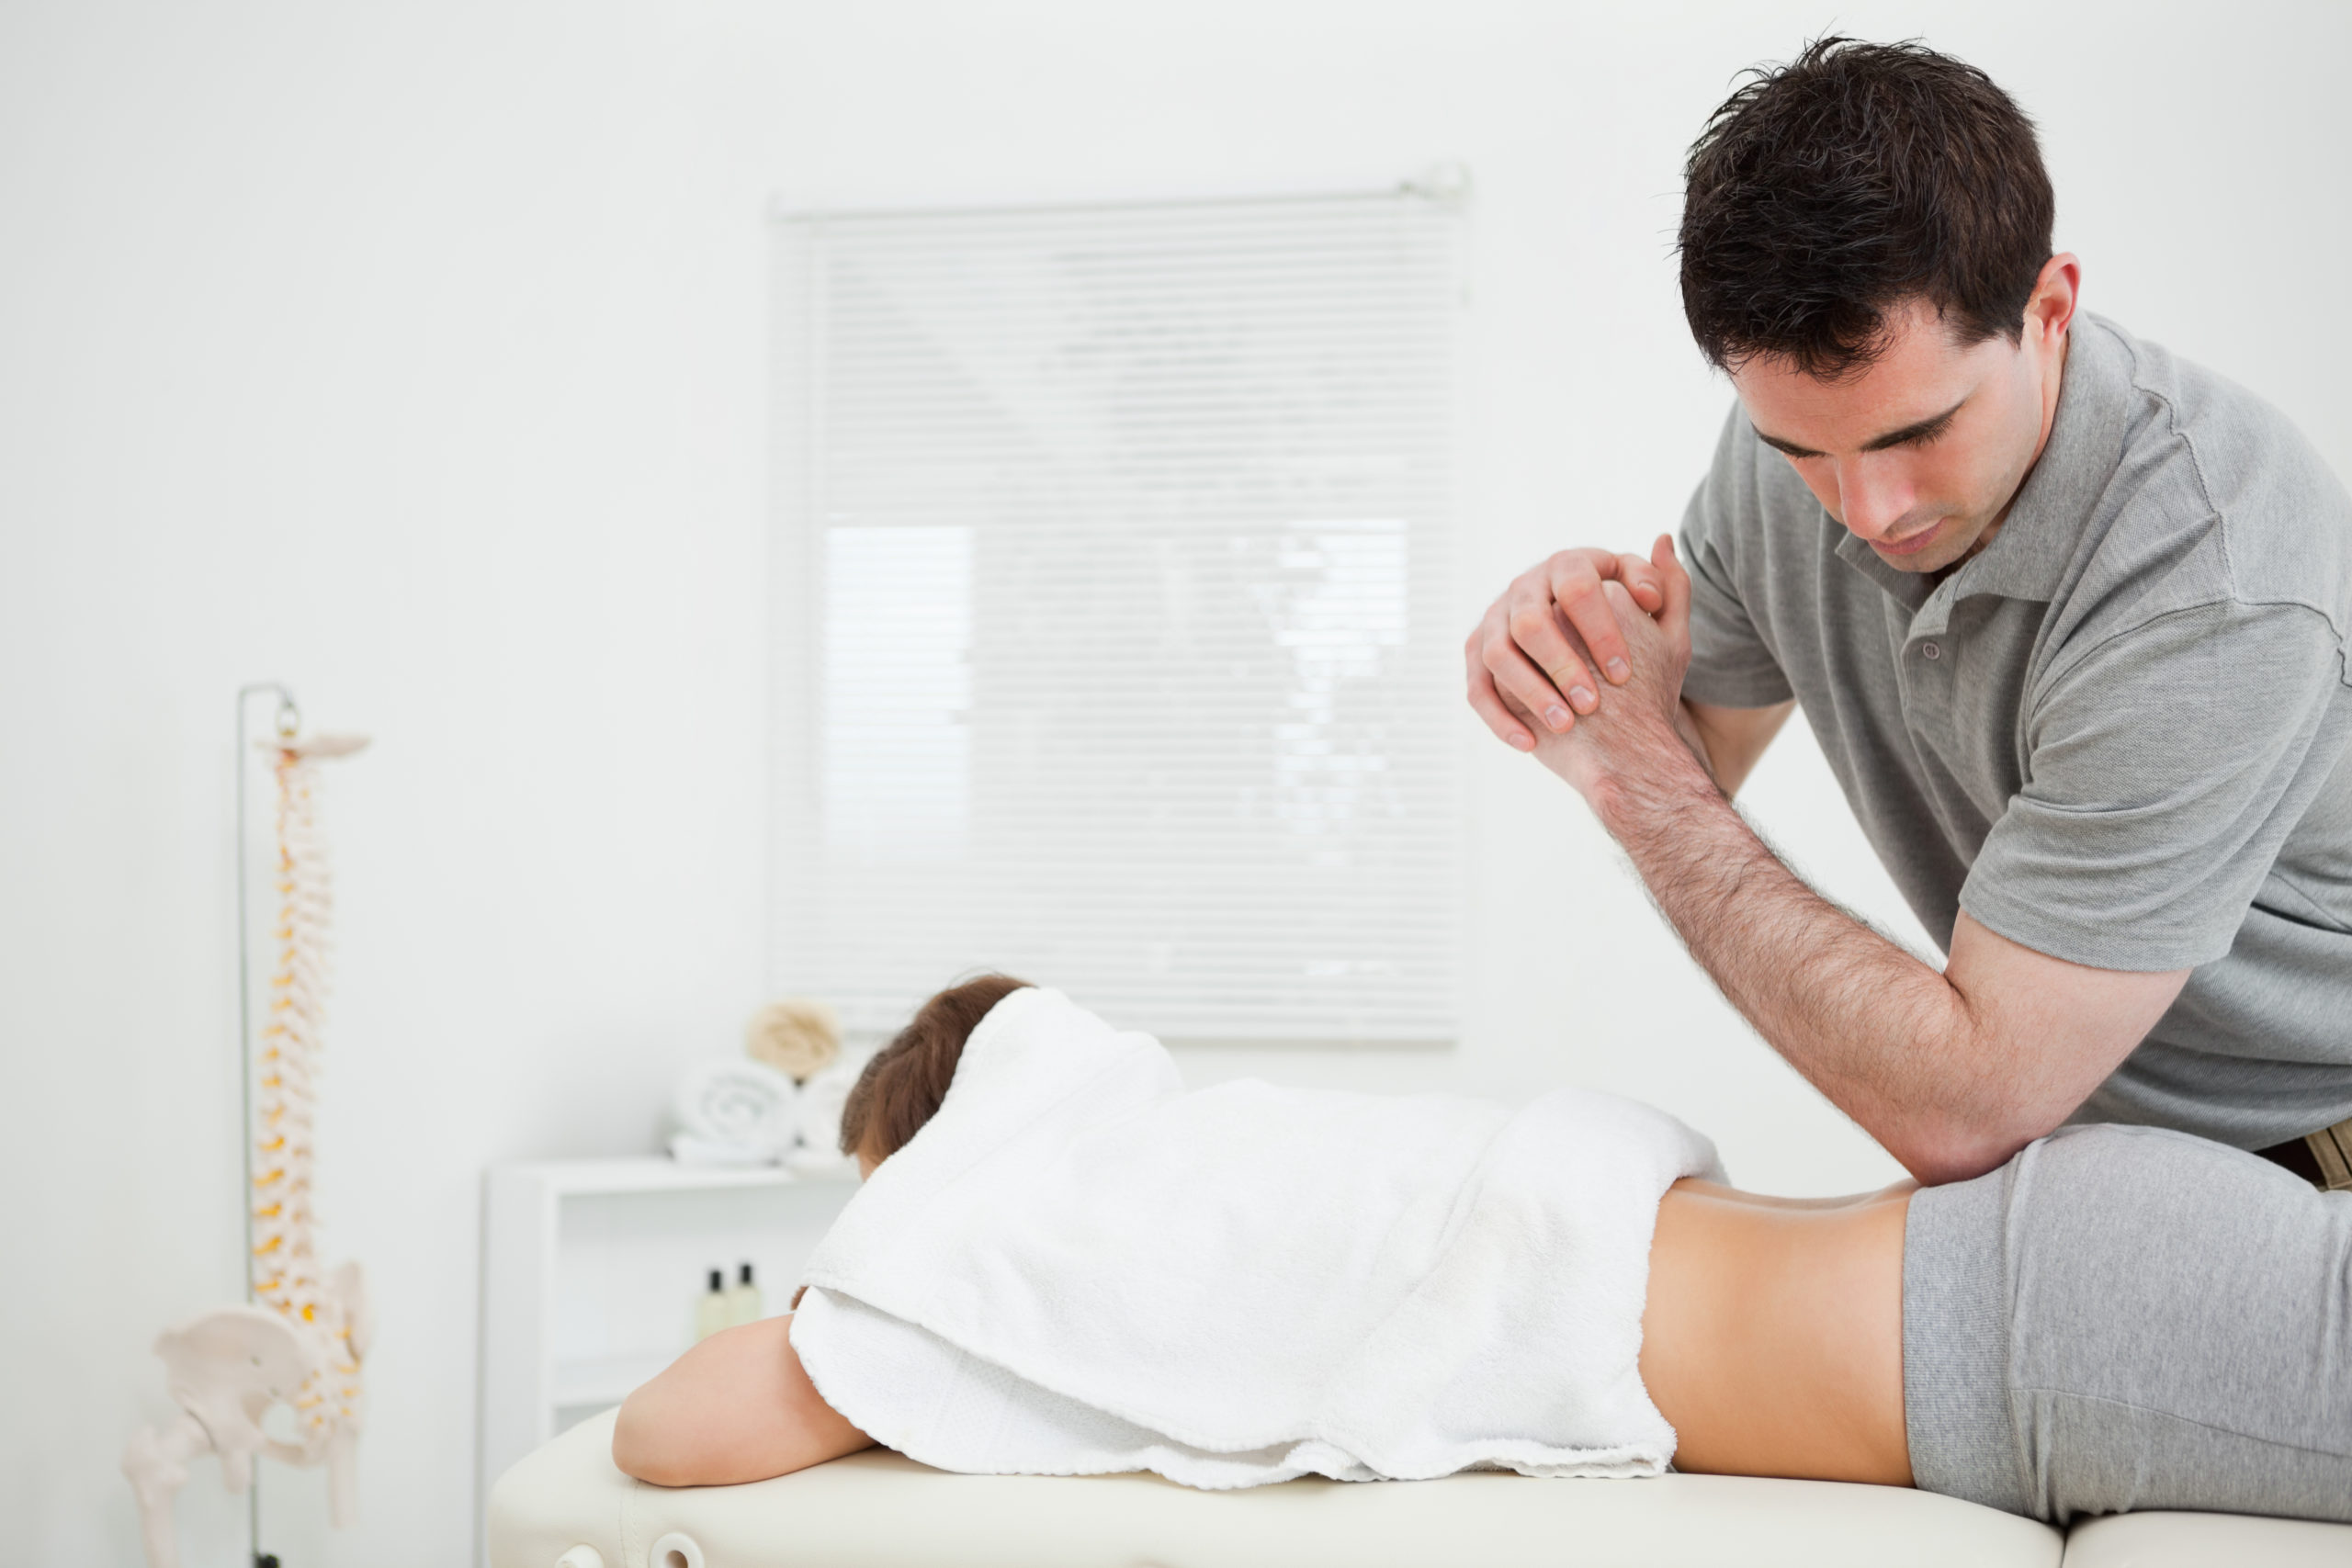 coccyx injury compensation claims